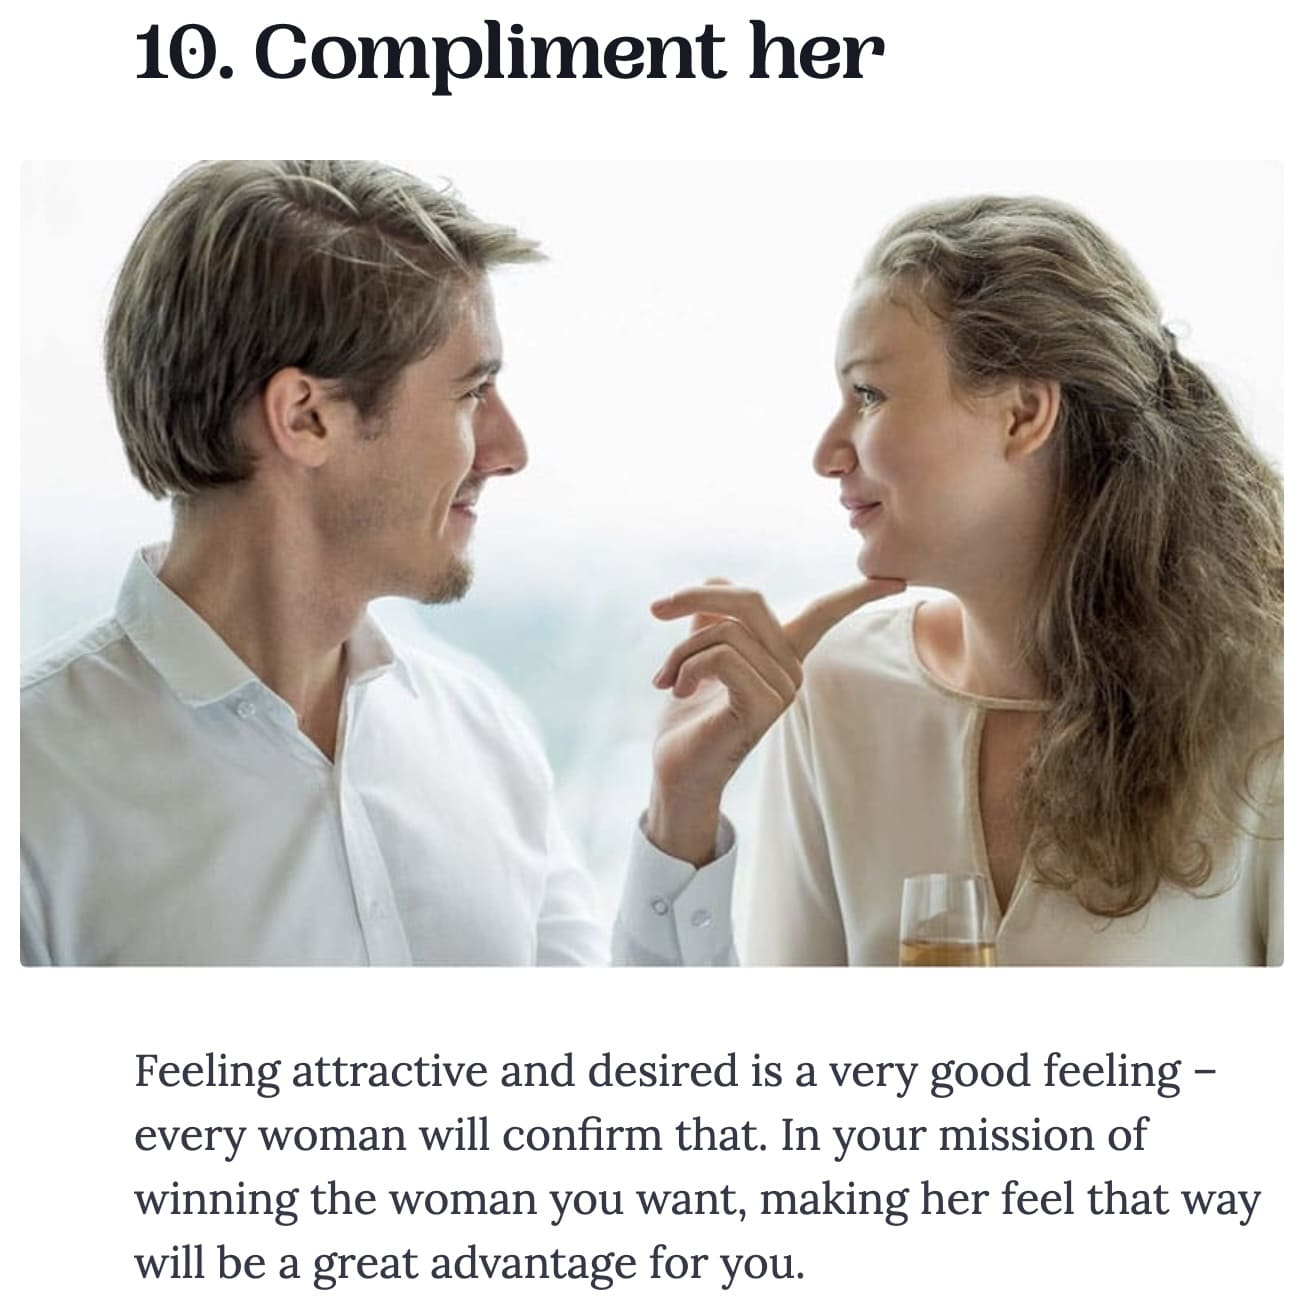 Example of bad dating advice